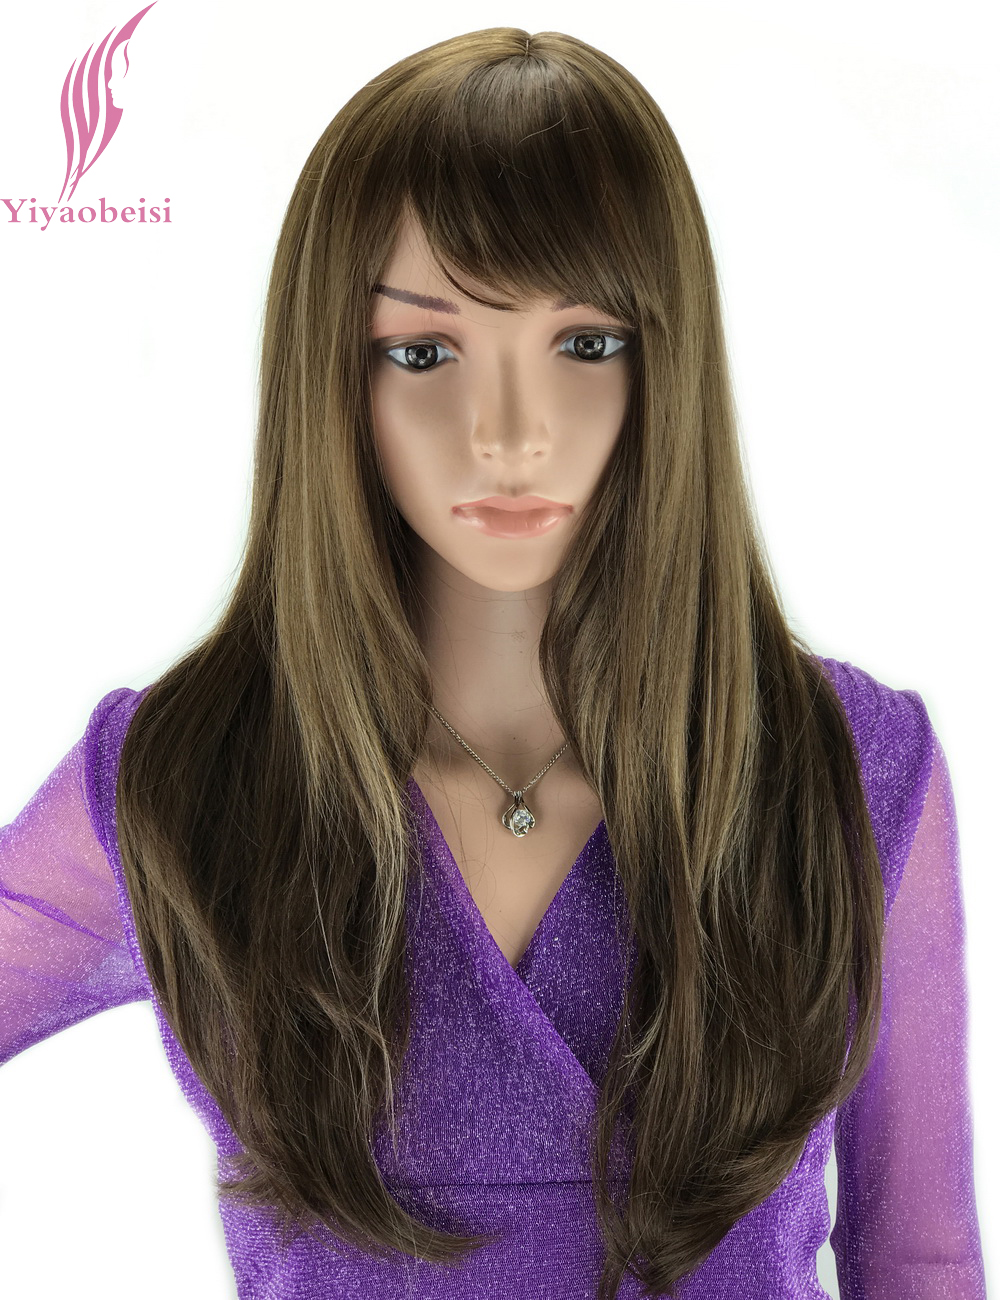 Yiyaobess 20inch U Part African American Long Straight Wig For Women Heat Resistant Synthetic Blonde Brown Highlights On Hair